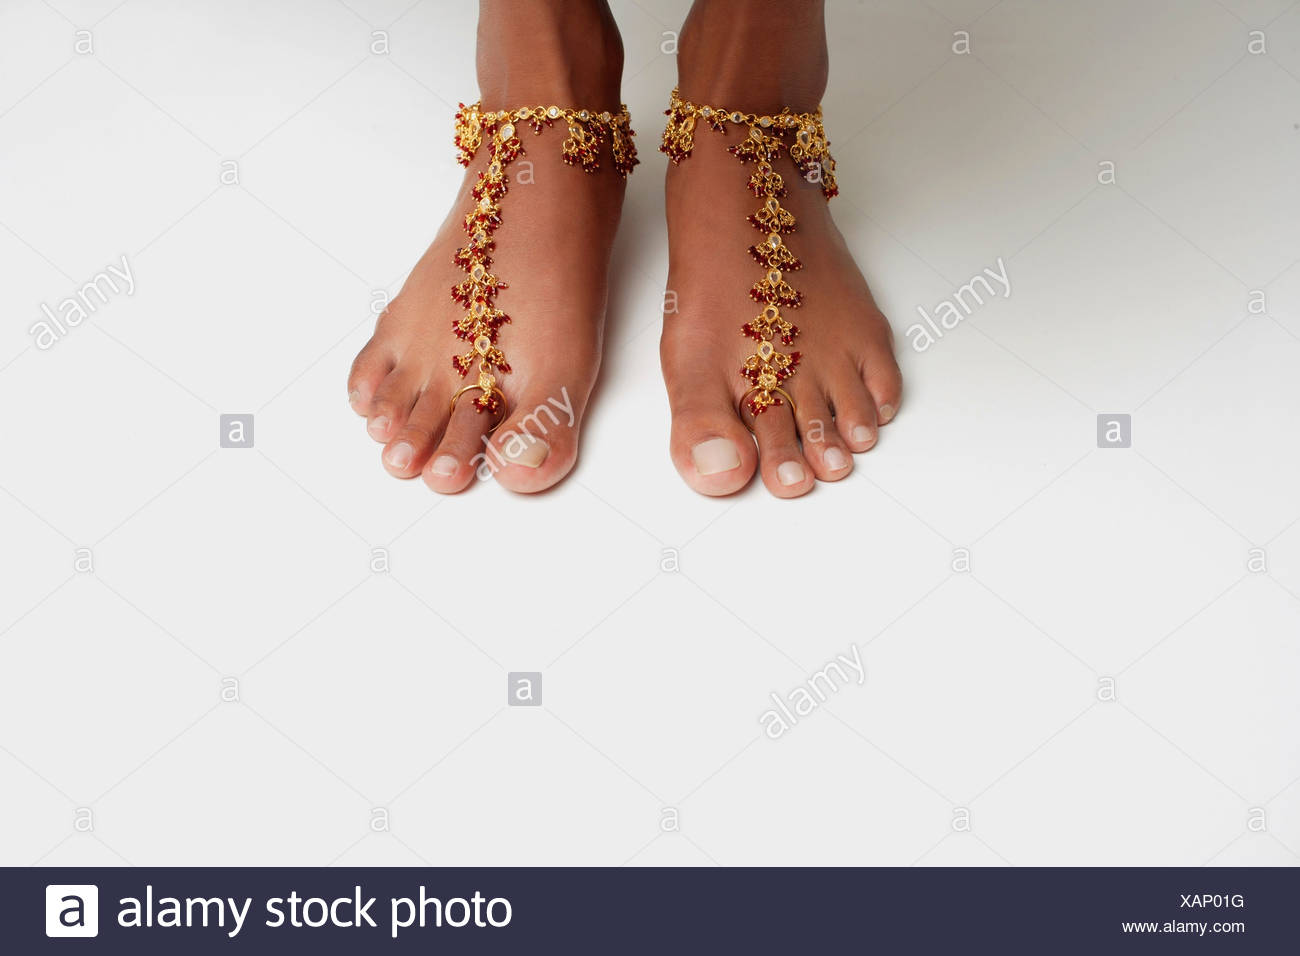 hodka alamy semi in a images anklet meghawal girl female on arid ankle photos traditional bracelet photo region stock young